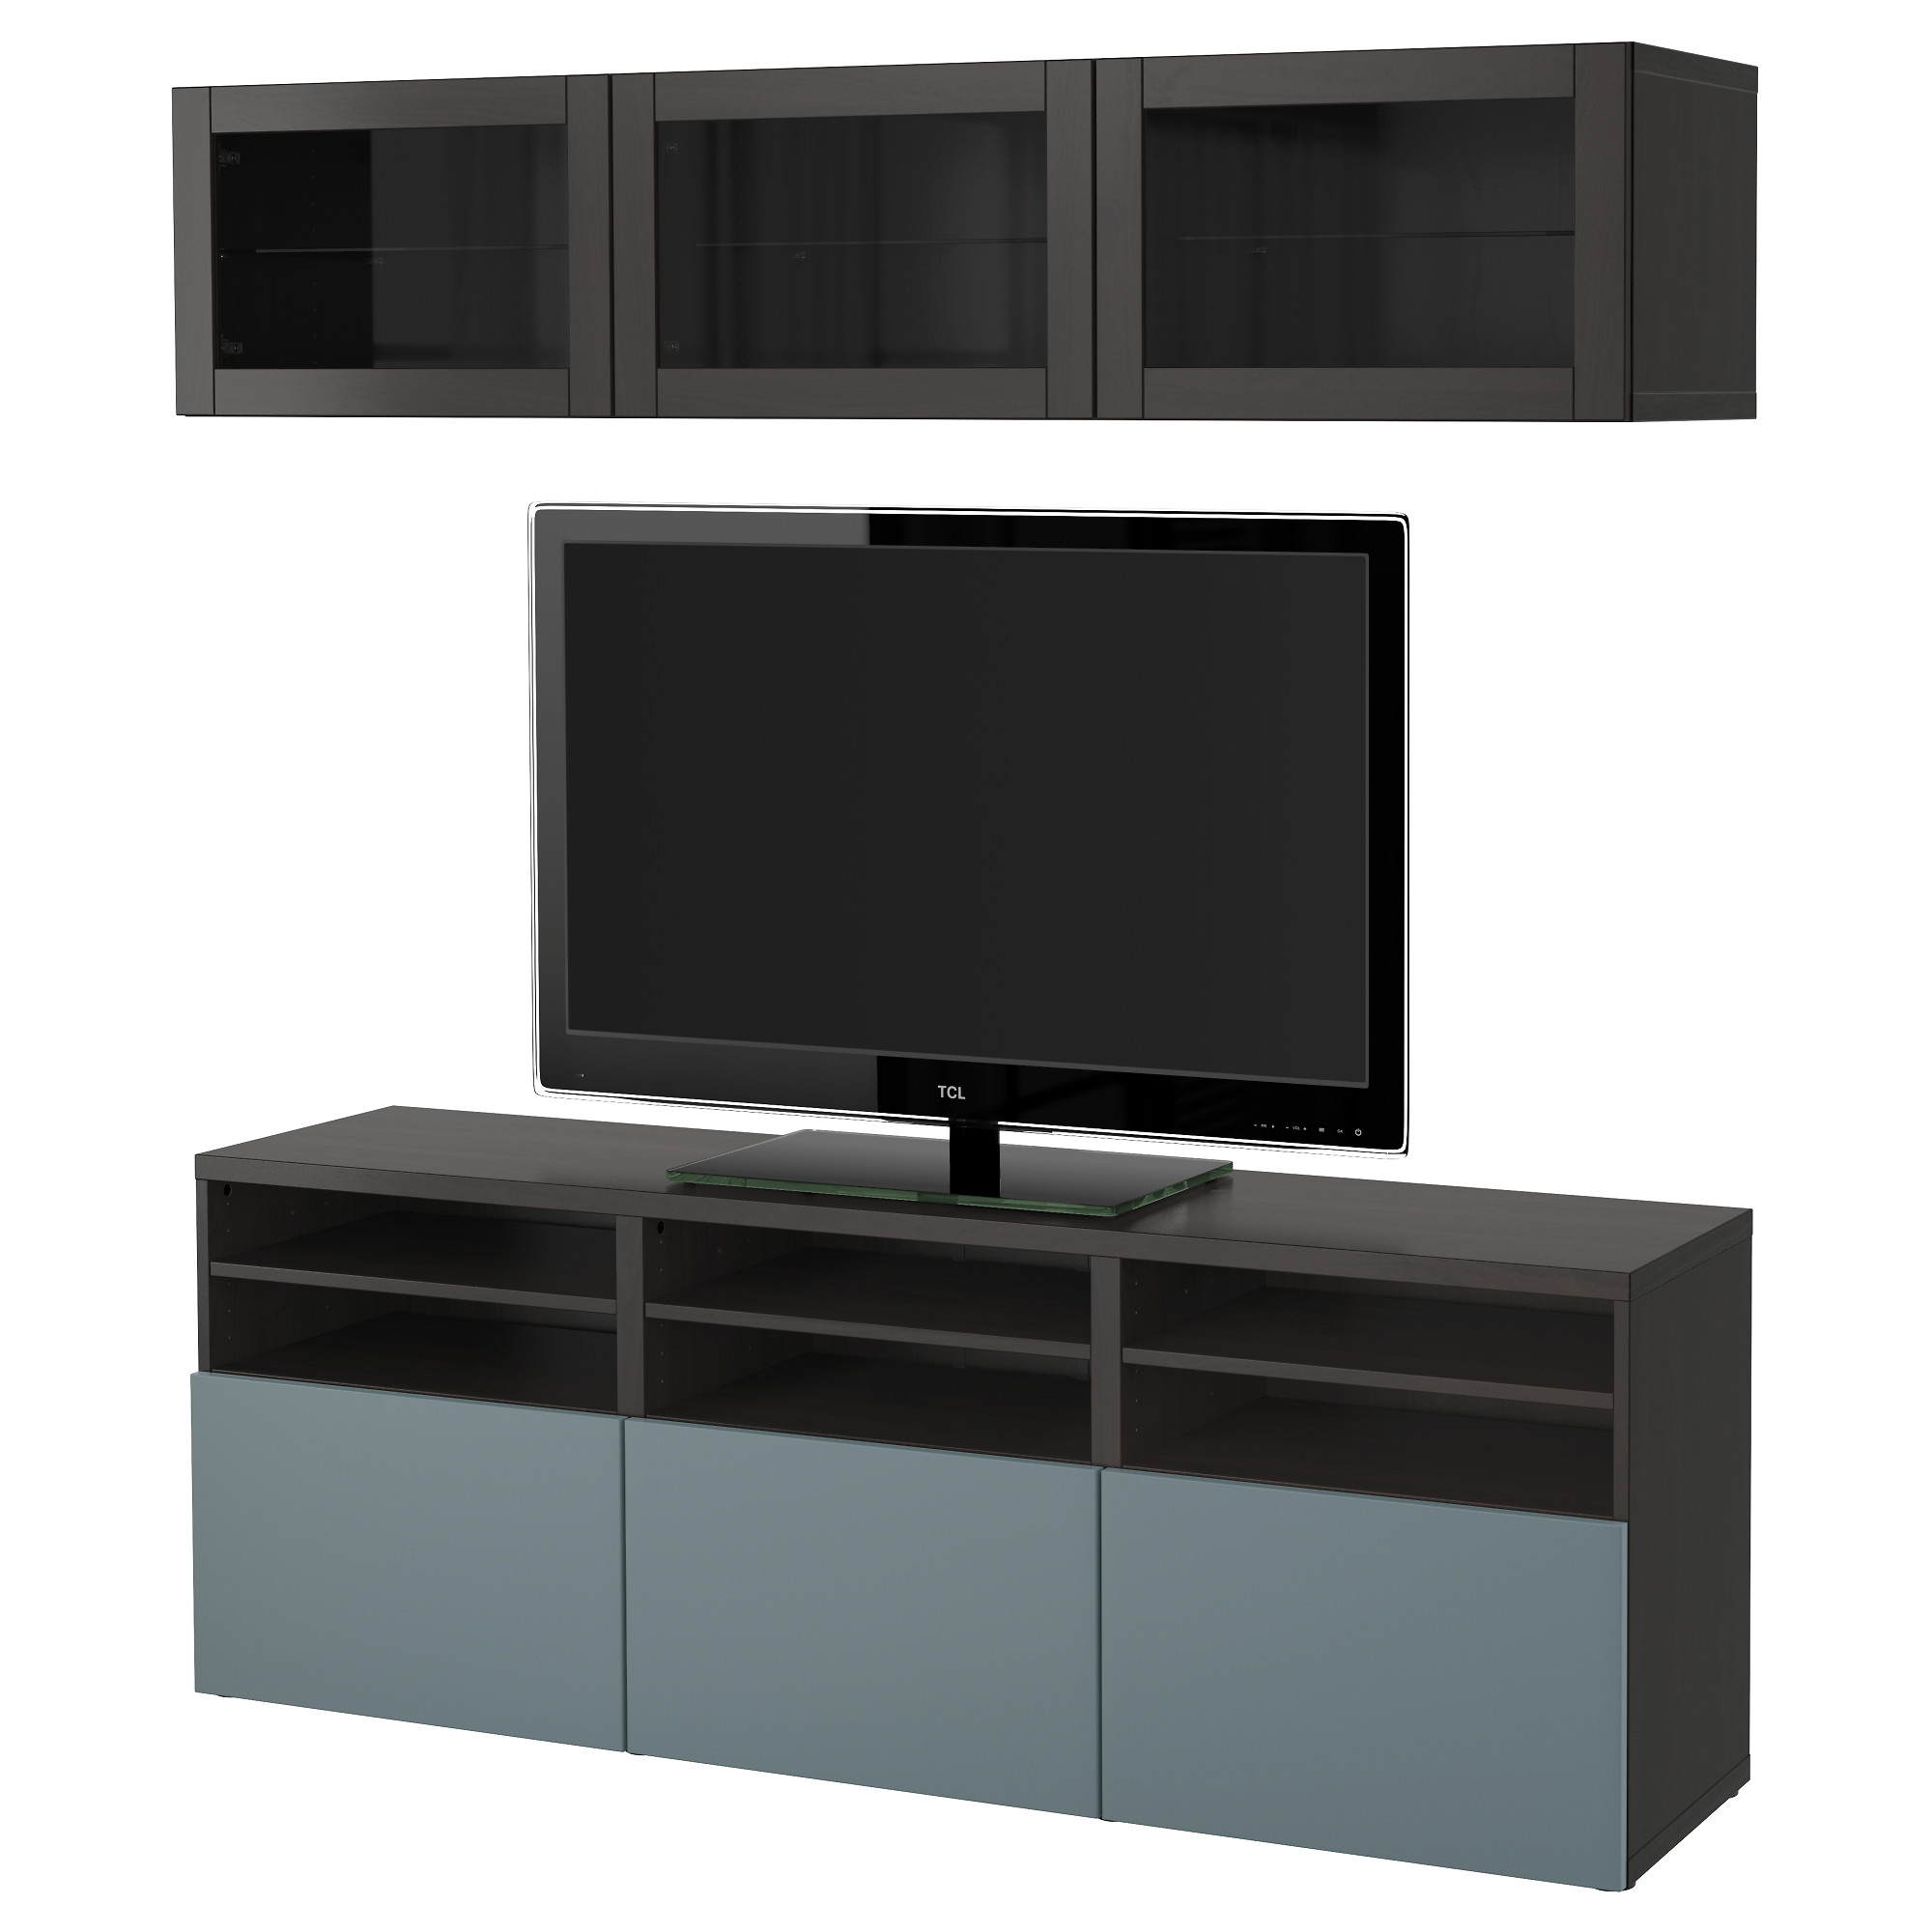 BestÅ Tv Storage Combination Gl Doors Black Brown Selsviken High Gloss Smoked Drawer Runner Push Open Ikea